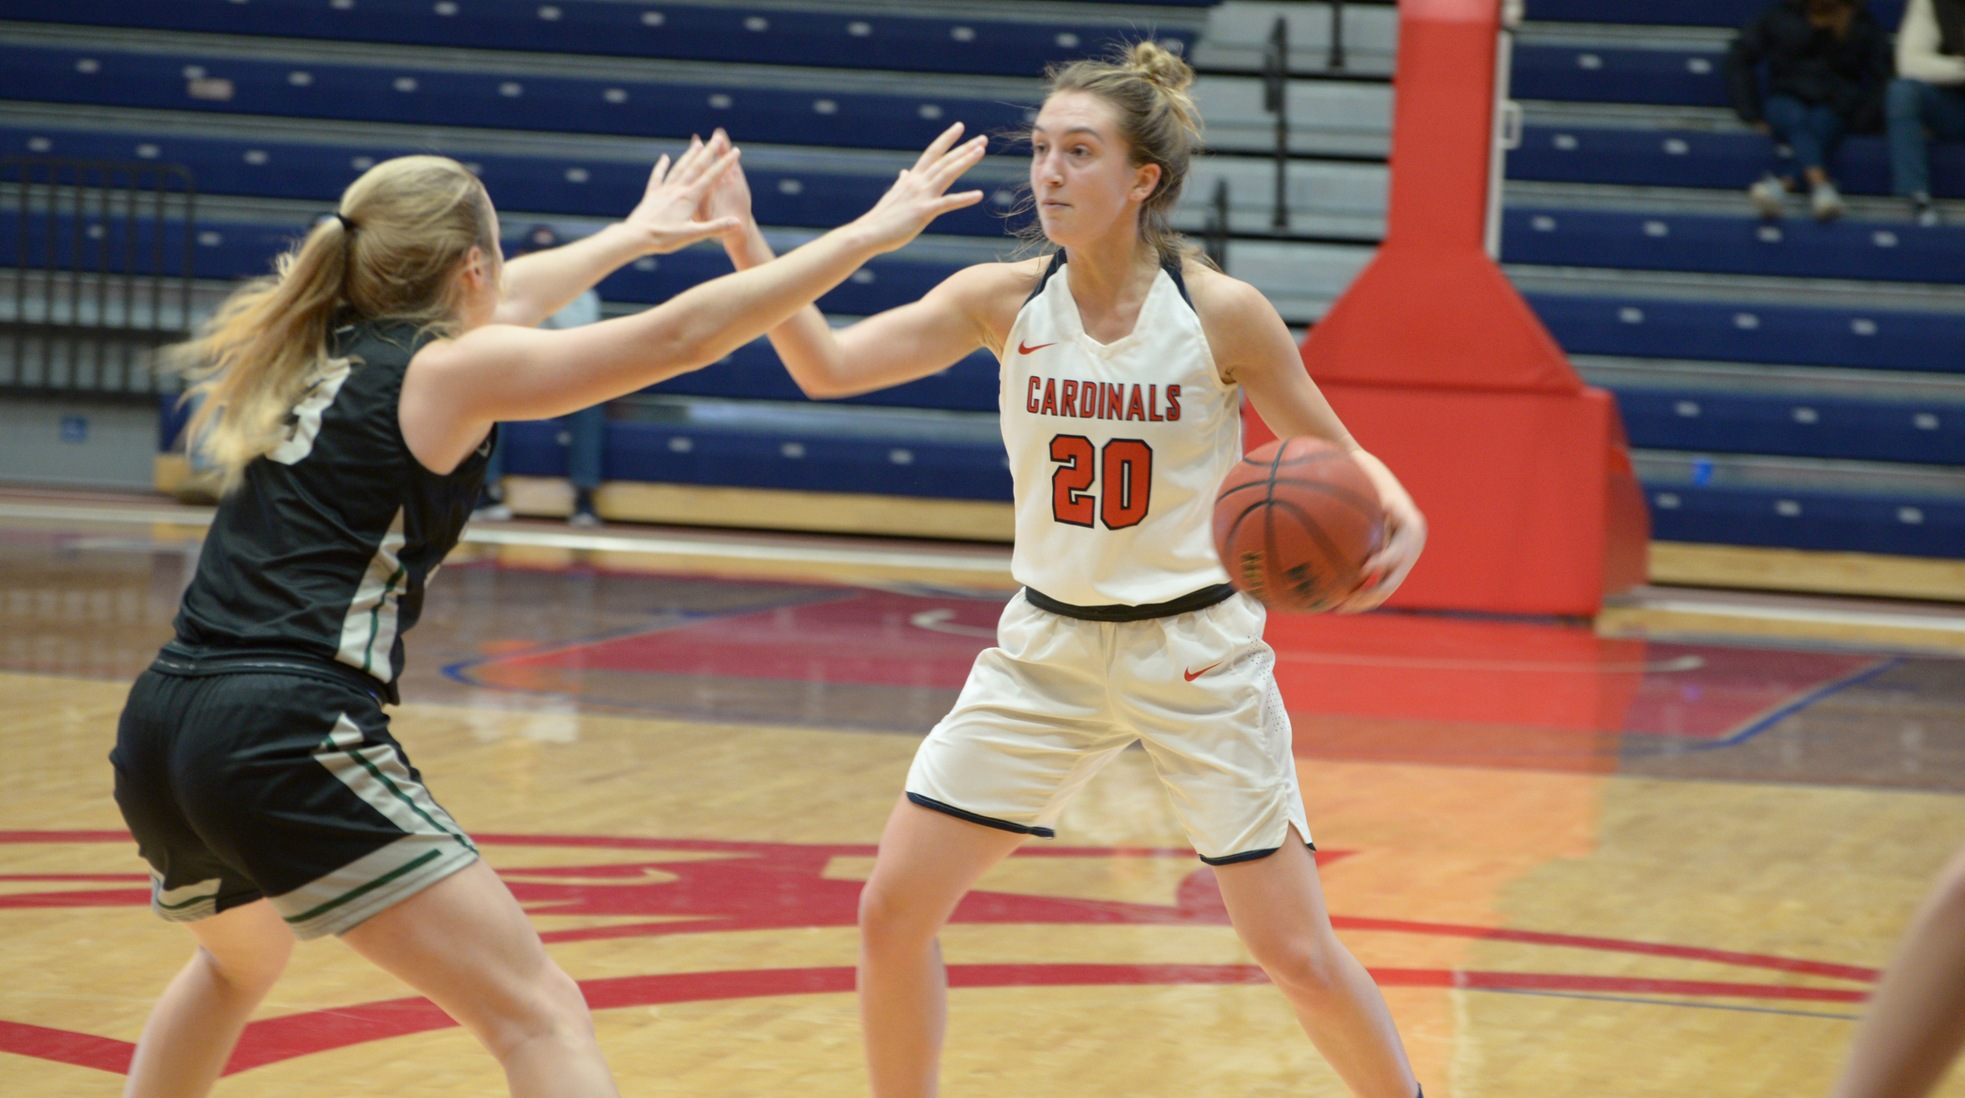 Cardinals claim GLIAC-opening victory over Huskies